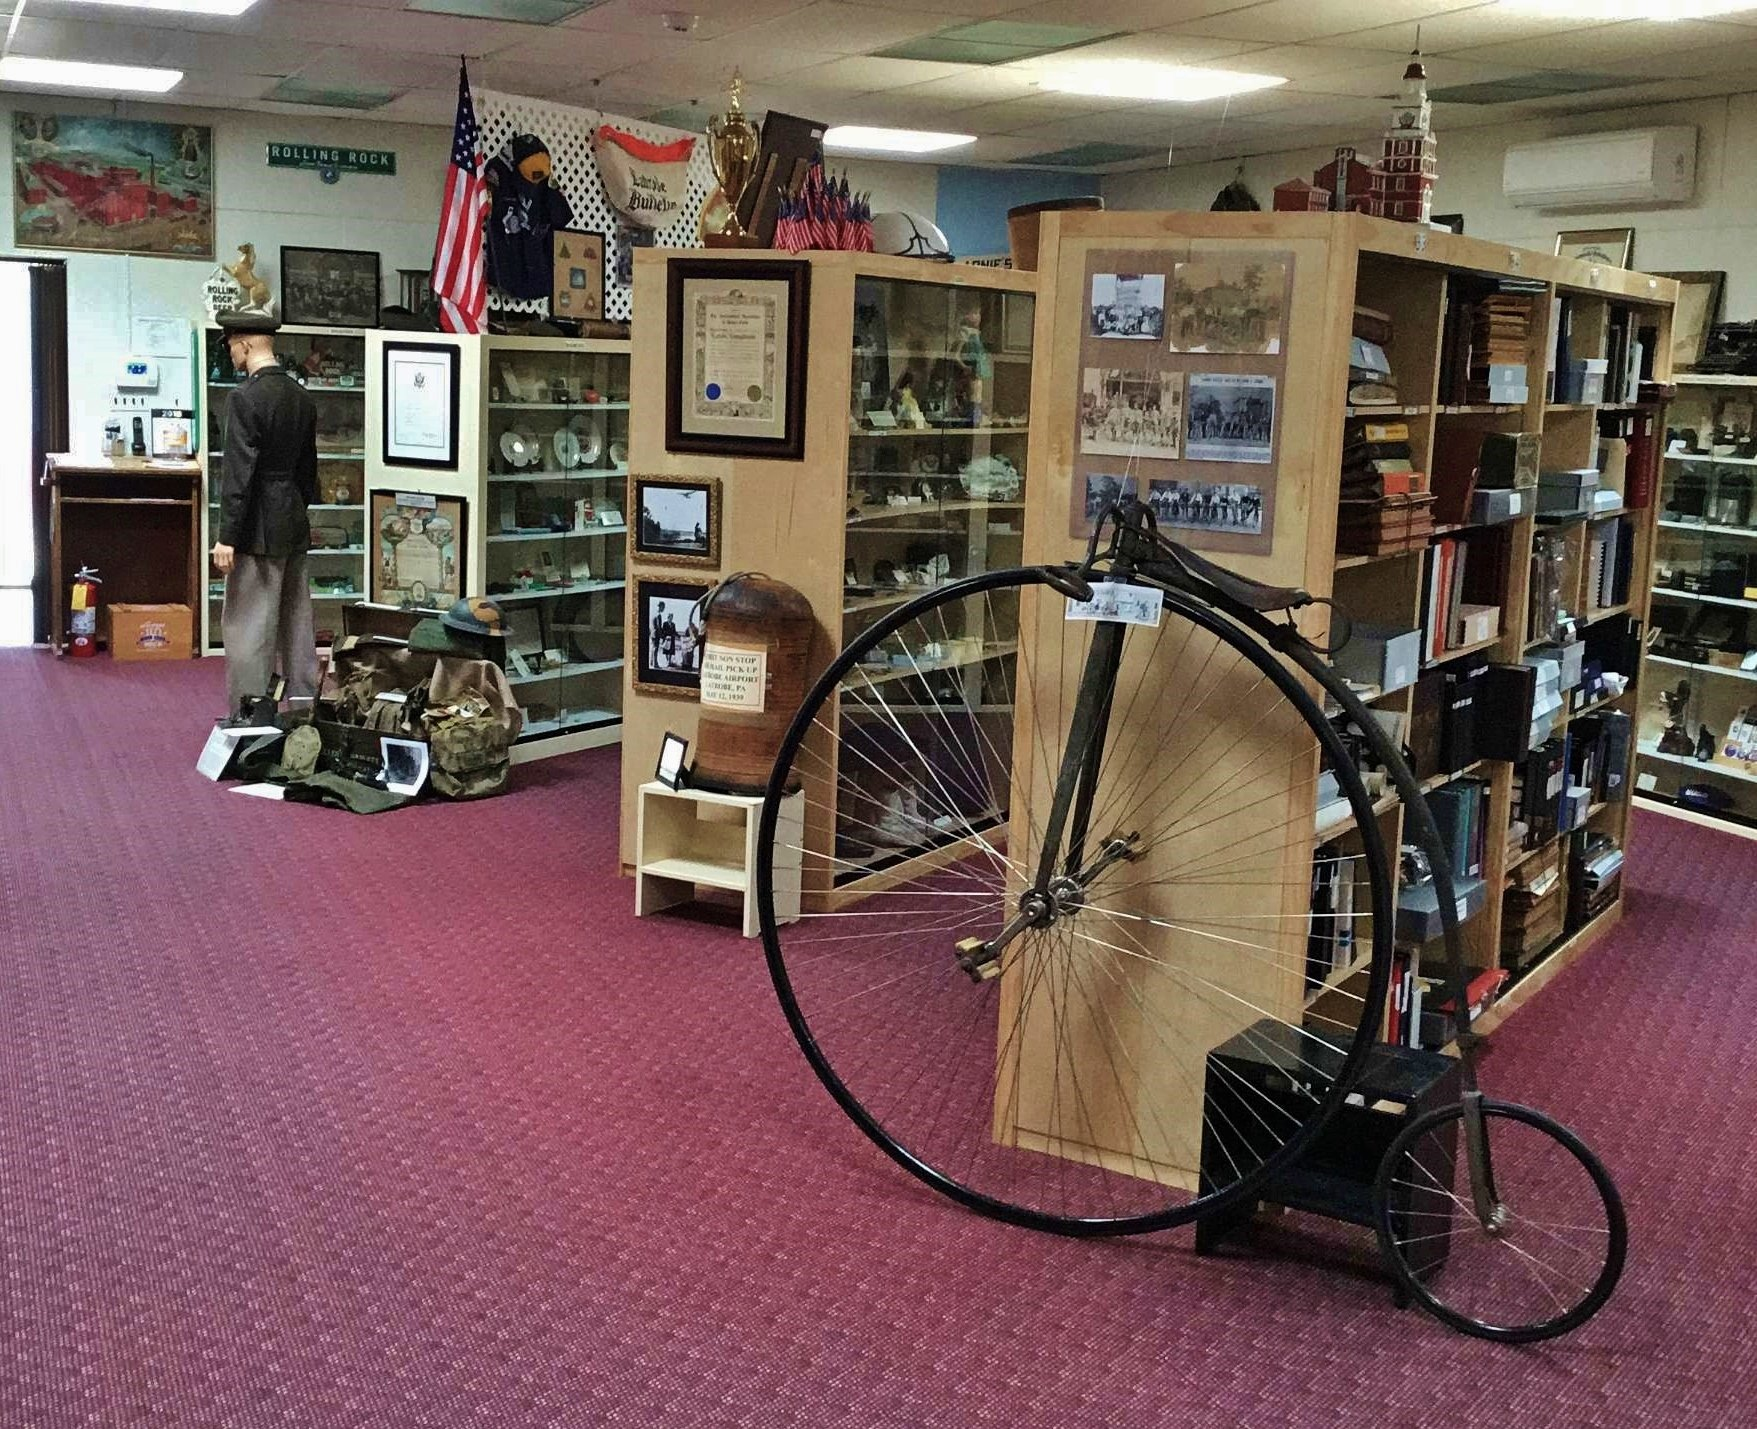 Penny farthing cycling clubs and first airmail delivery